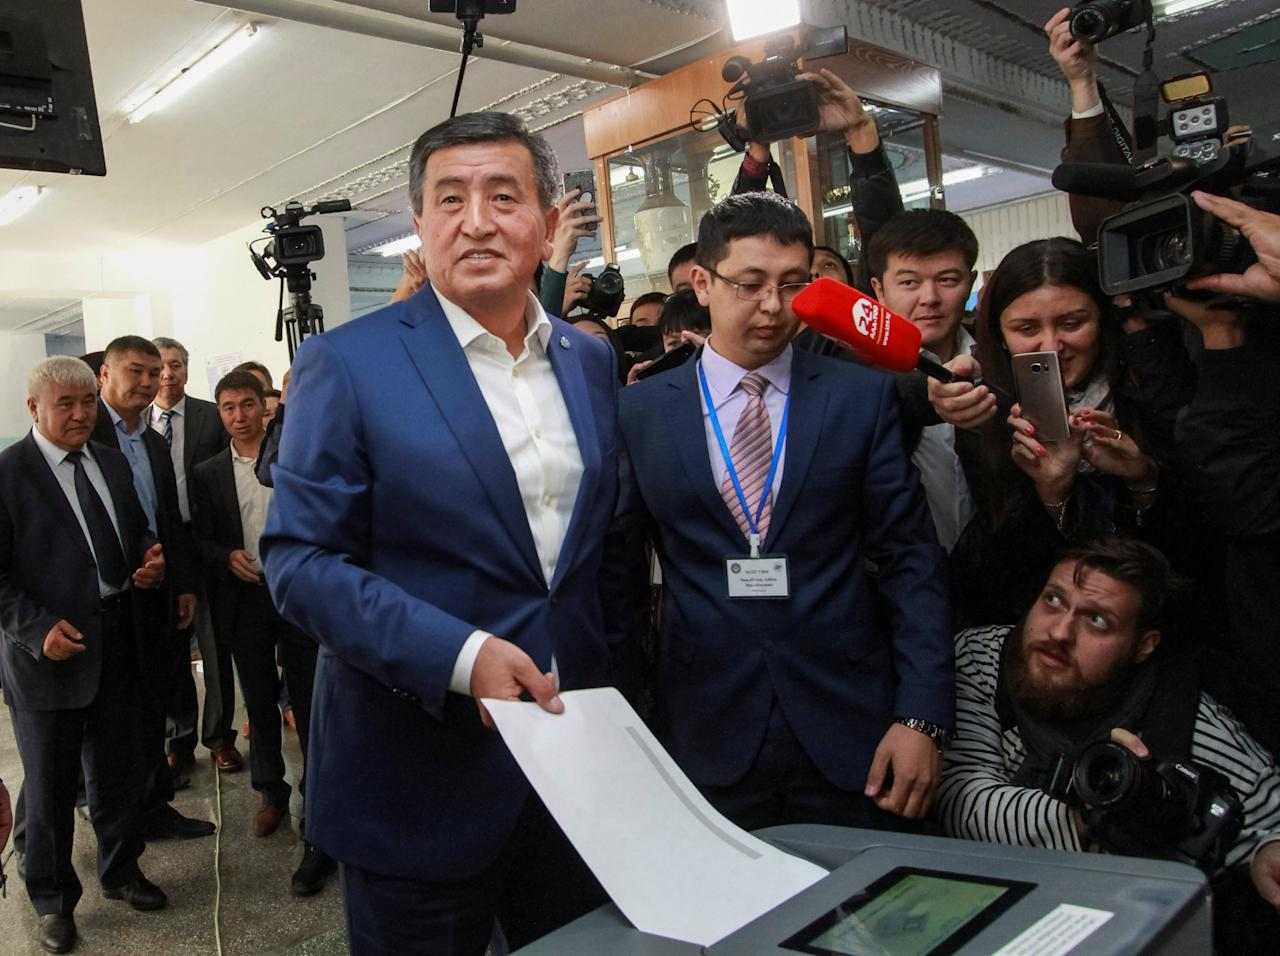 Presidential candidate Sooronbai Jeenbekov casts his ballot at a polling station during the presidential election in Bishkek, Kyrgyzstan October 15, 2017.  REUTERS/Vladimir Pirogov